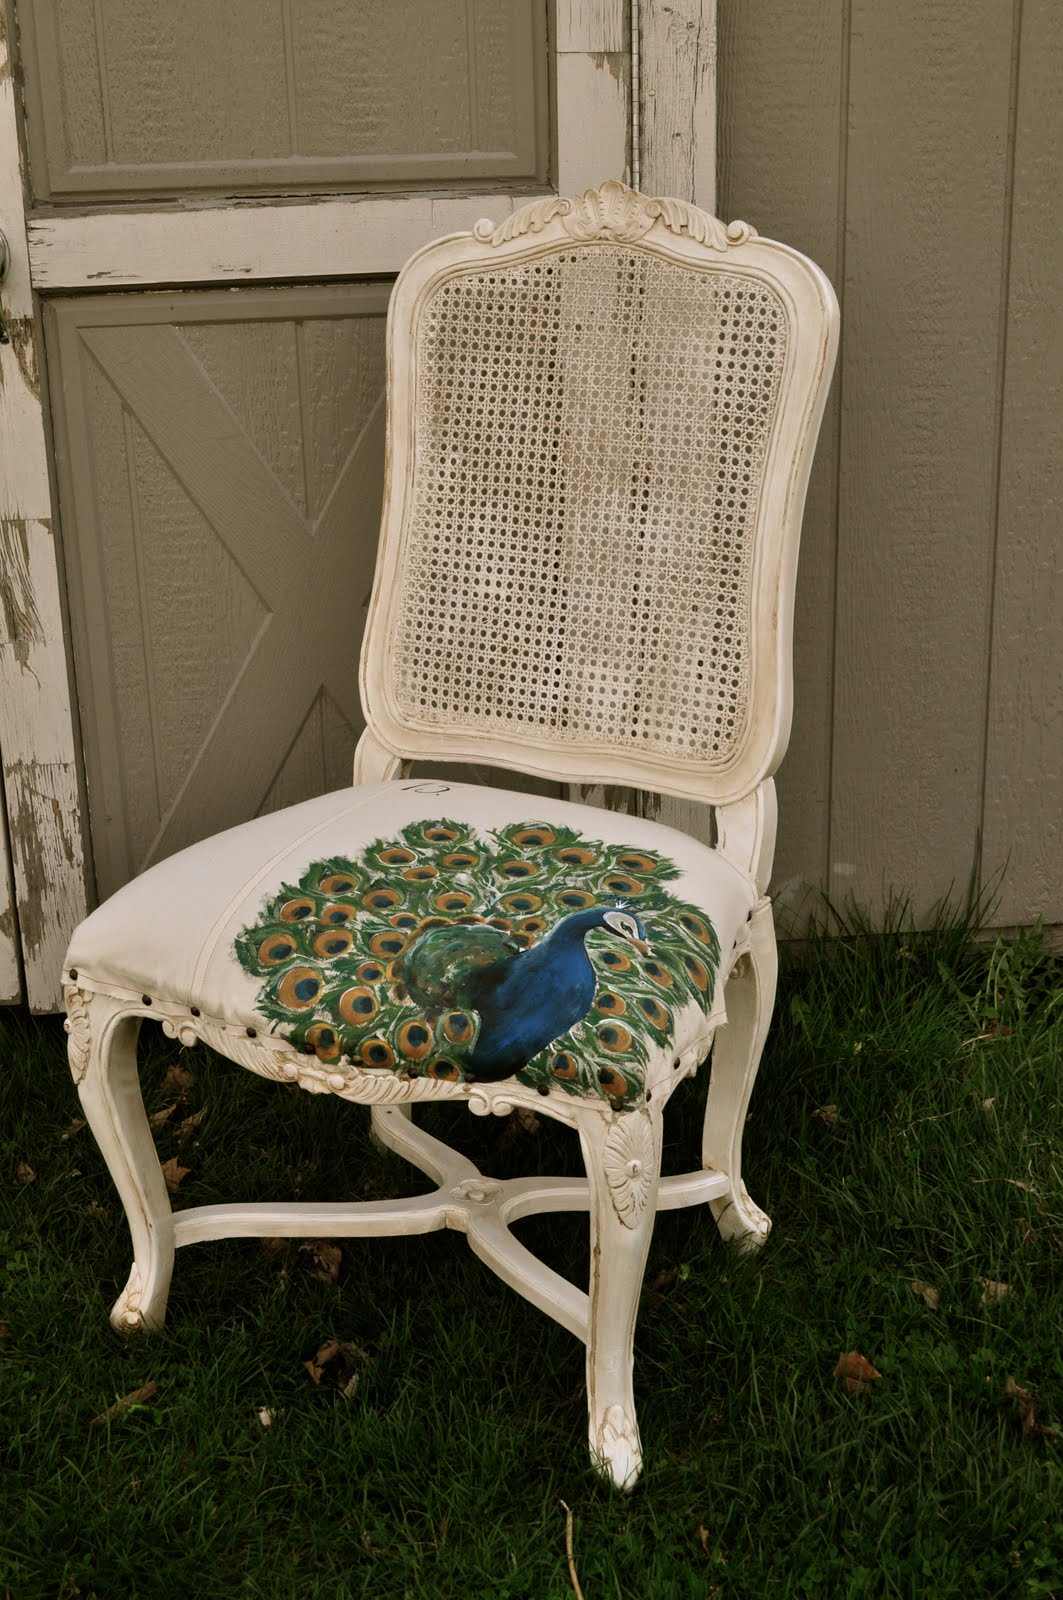 Hand Painted Peacock Chair U2026The Basics For Painting Your Own Upholsteryu2026